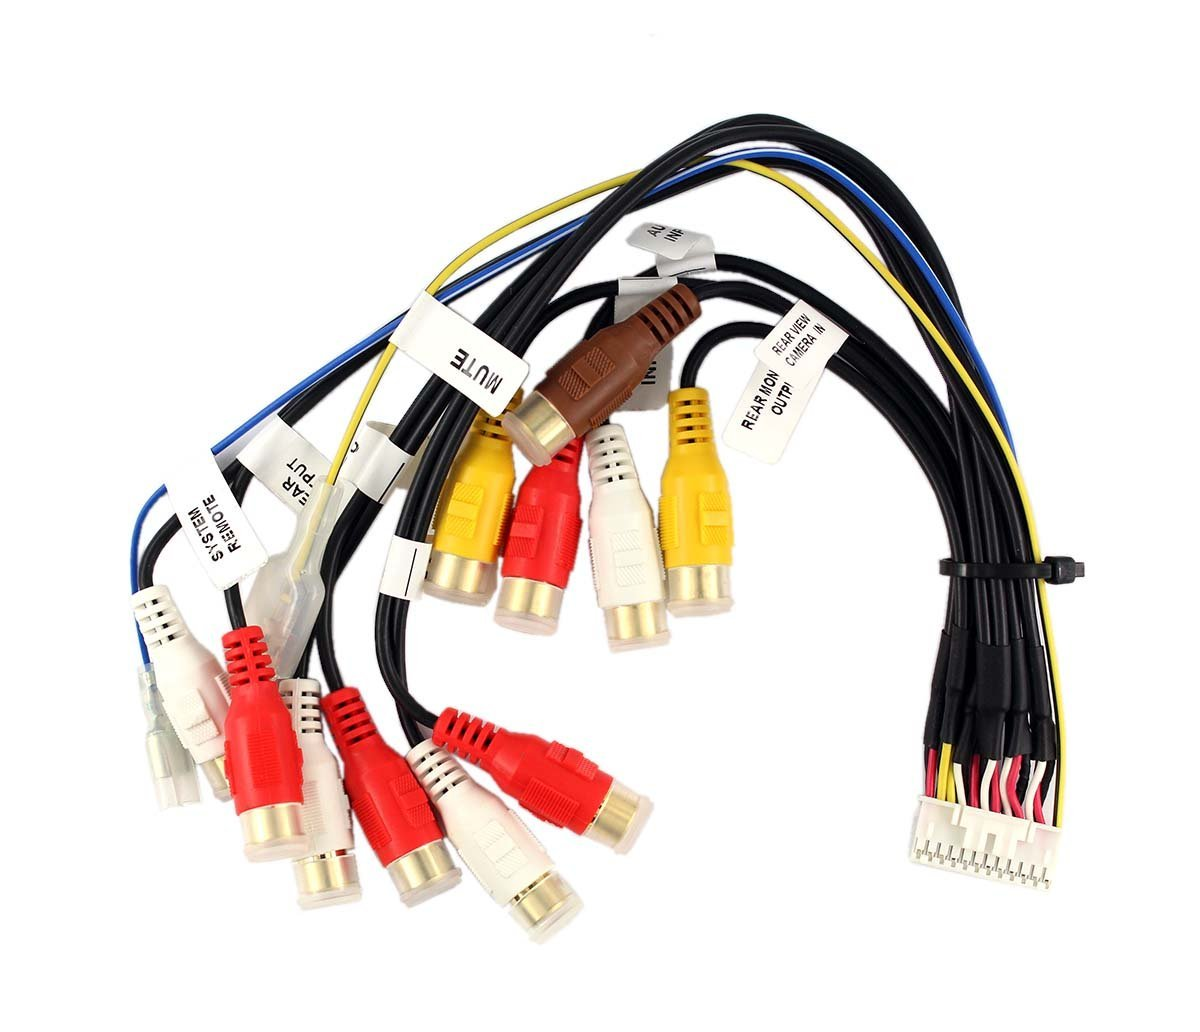 hight resolution of xa car audio wire harness 24pin rca for pioneer avic f900bt avic f90bt